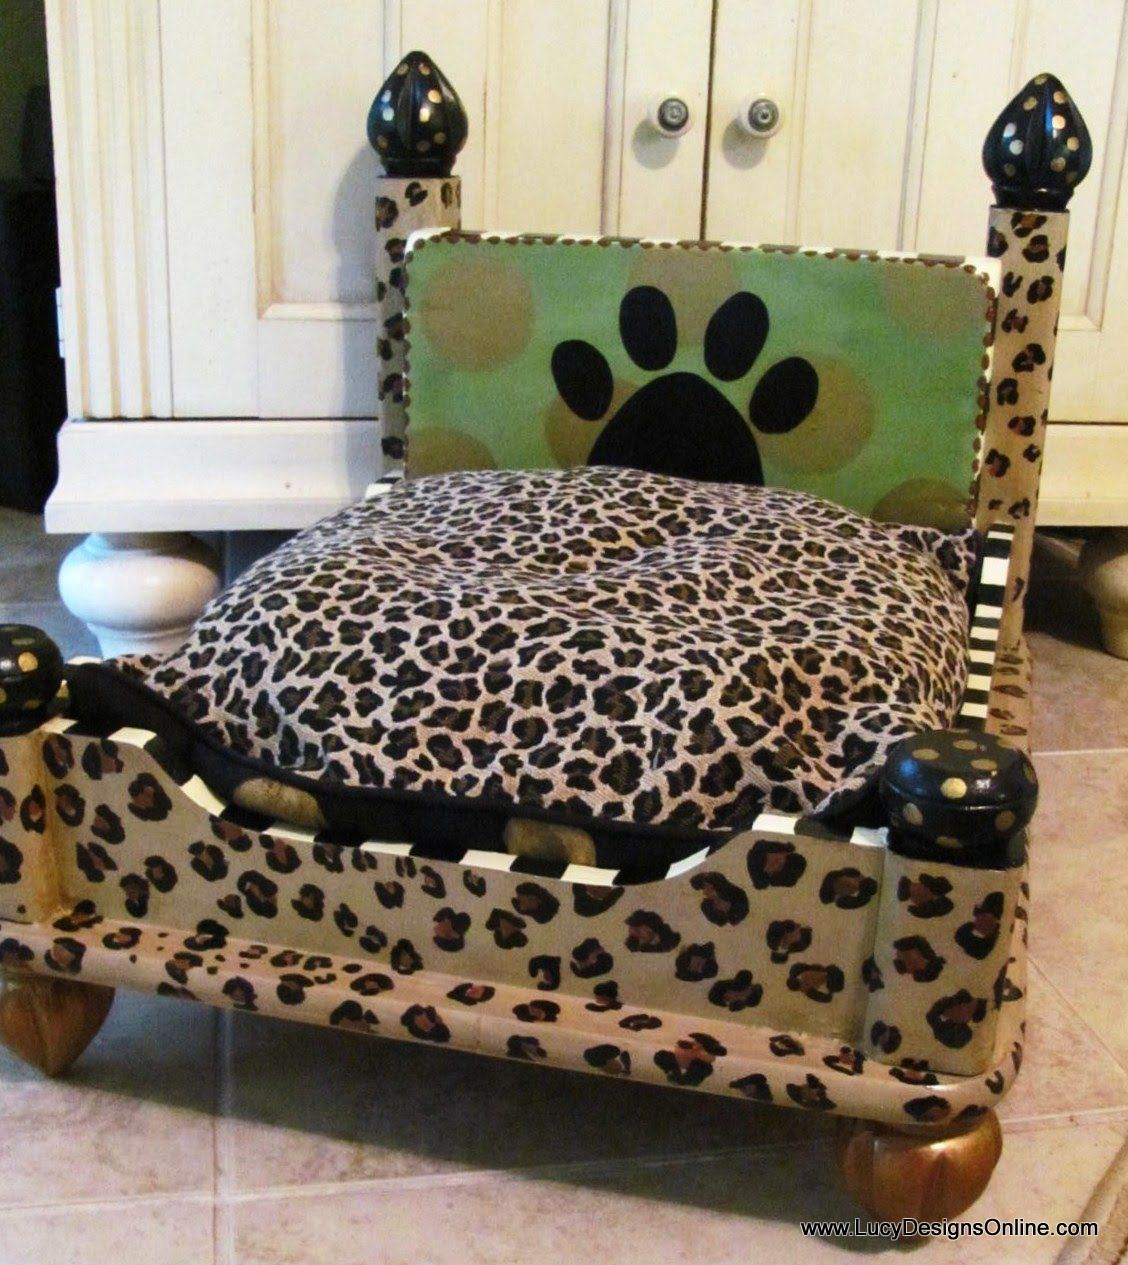 Delightful Cheetah+furniture | Found A Cushion To Fit With Animal Print On One Side And